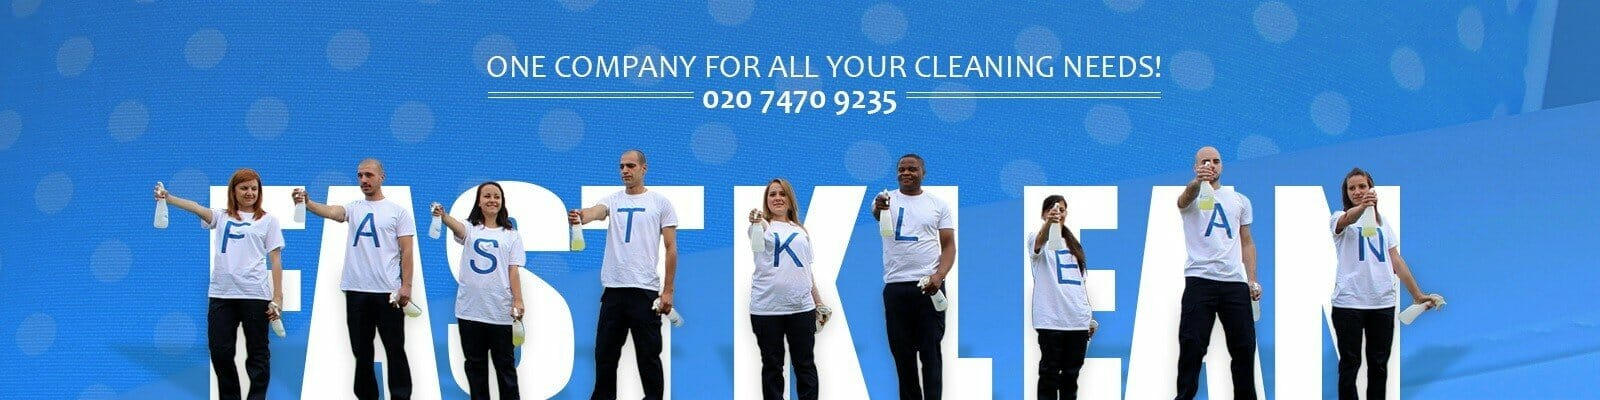 One Company For All Your Cleaning Needs